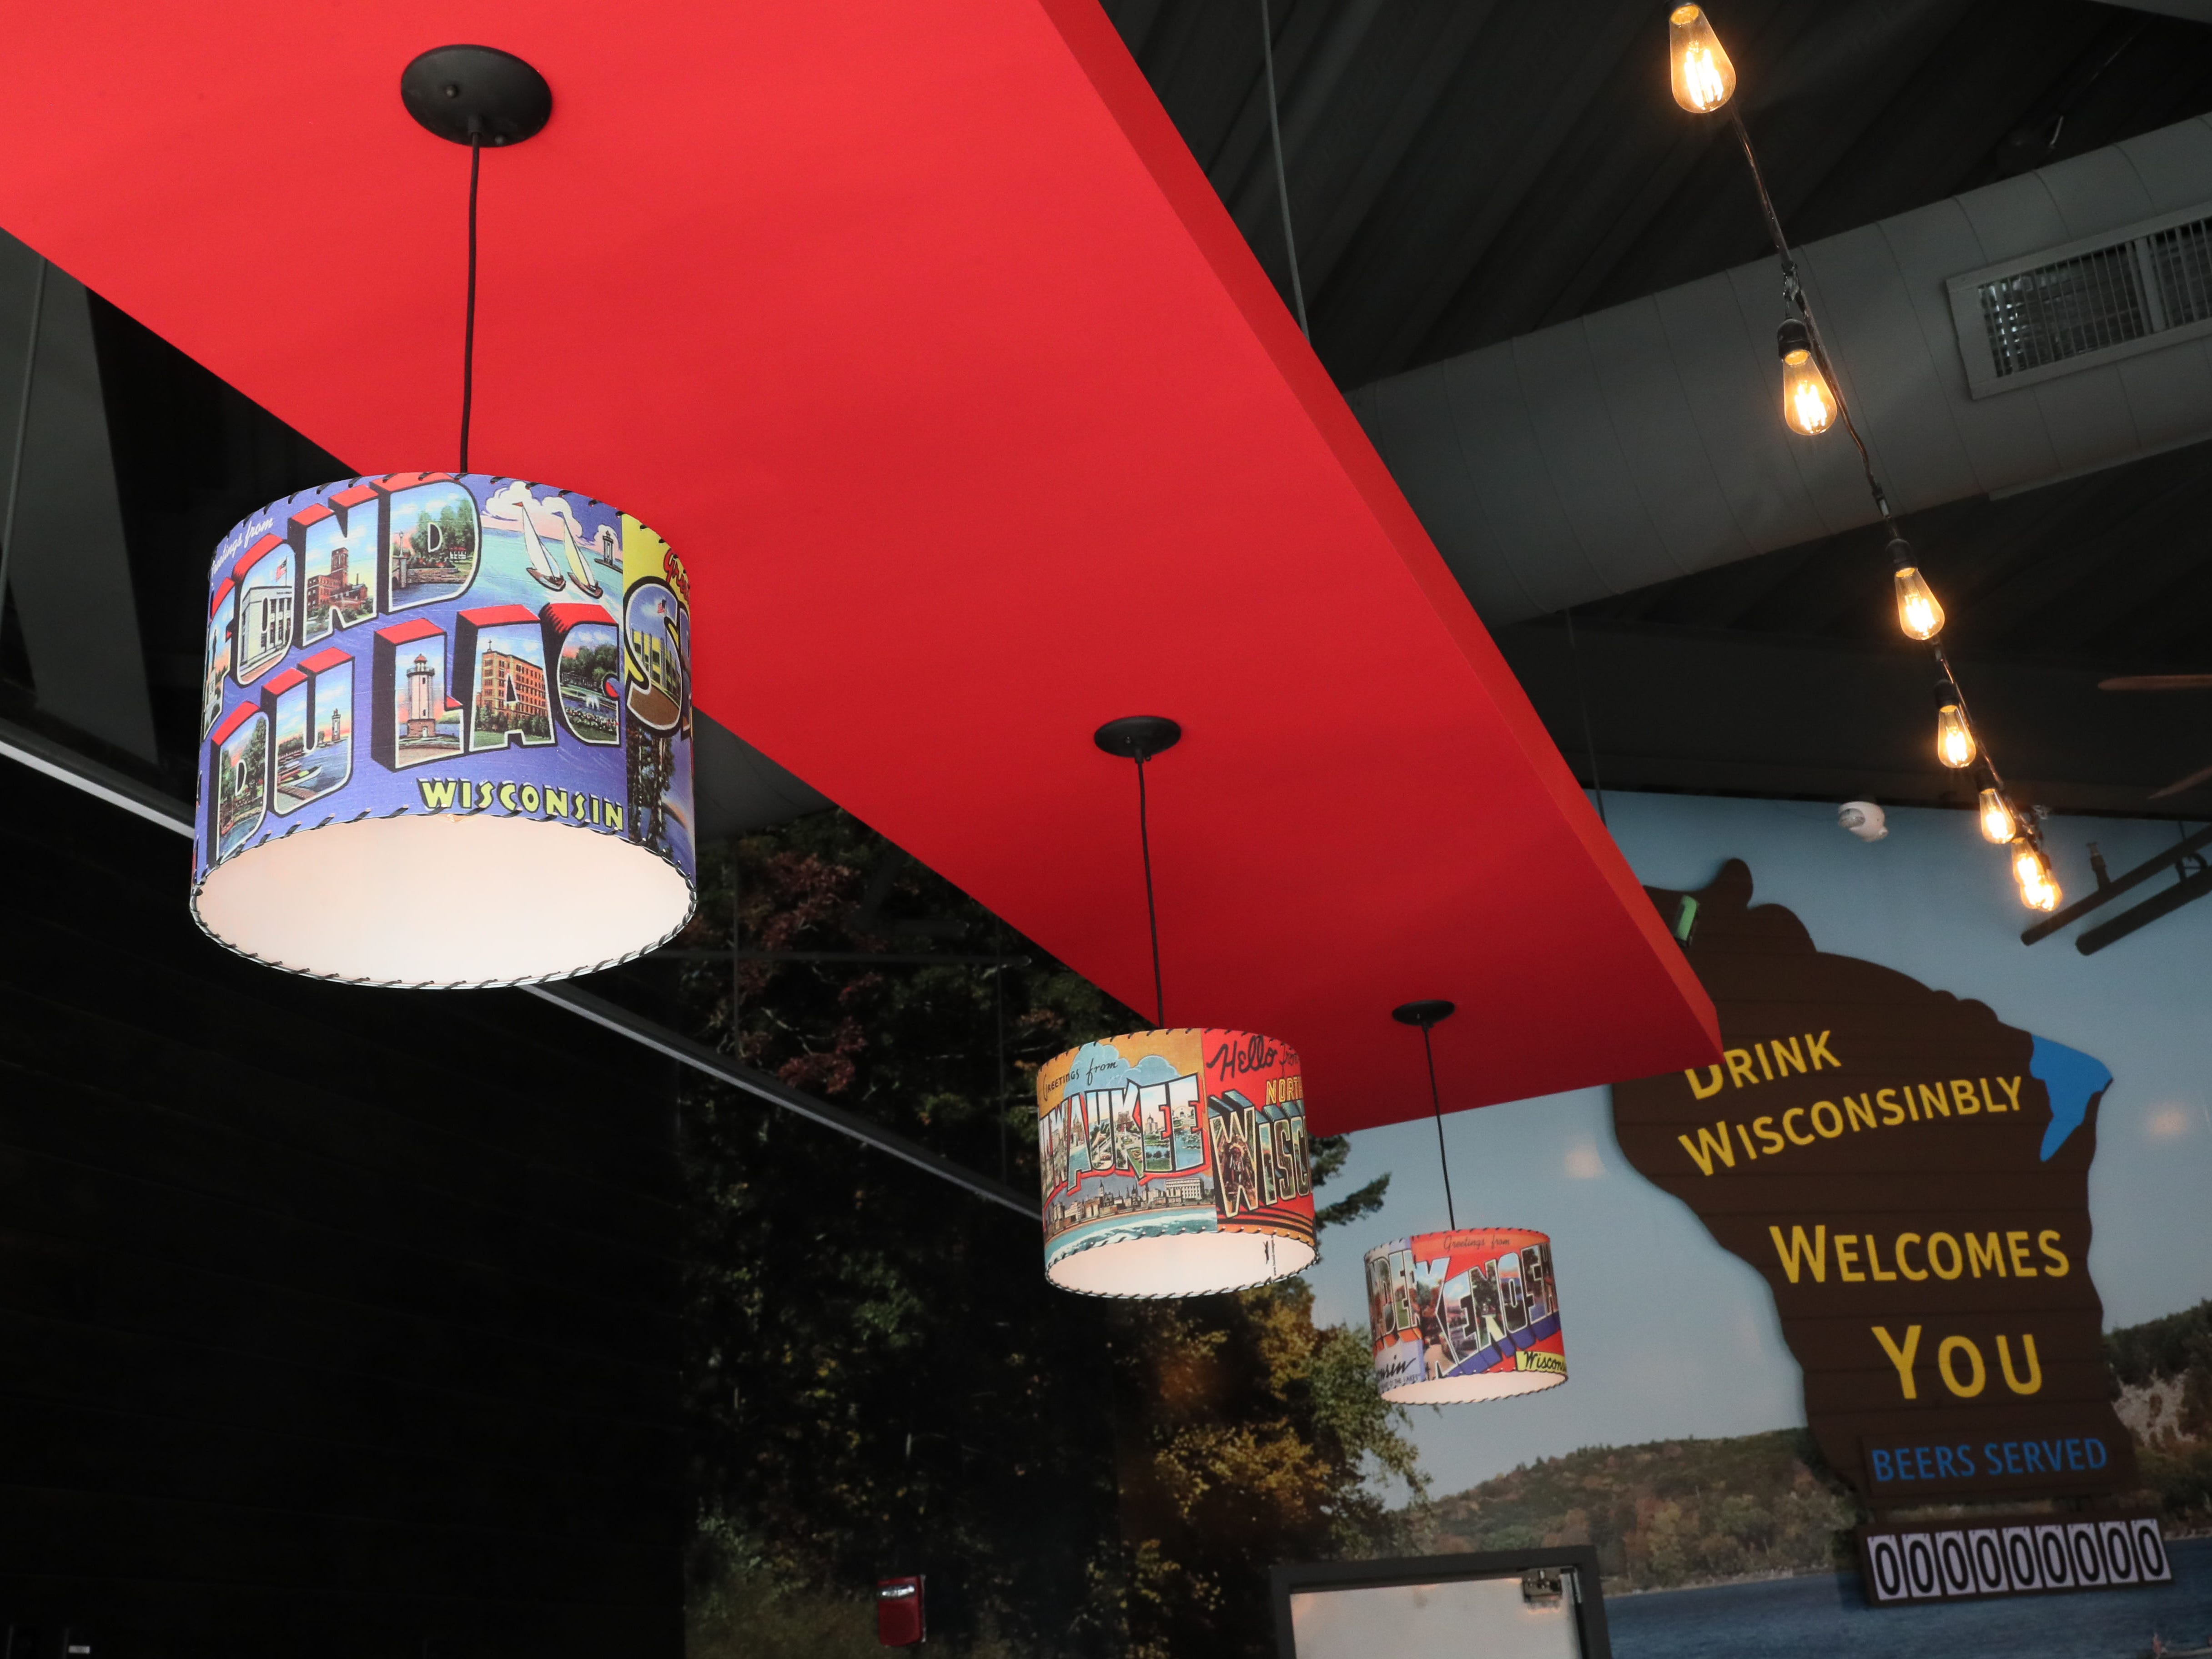 Custom lampshades above the bar bear the names of Wisconsin cities.